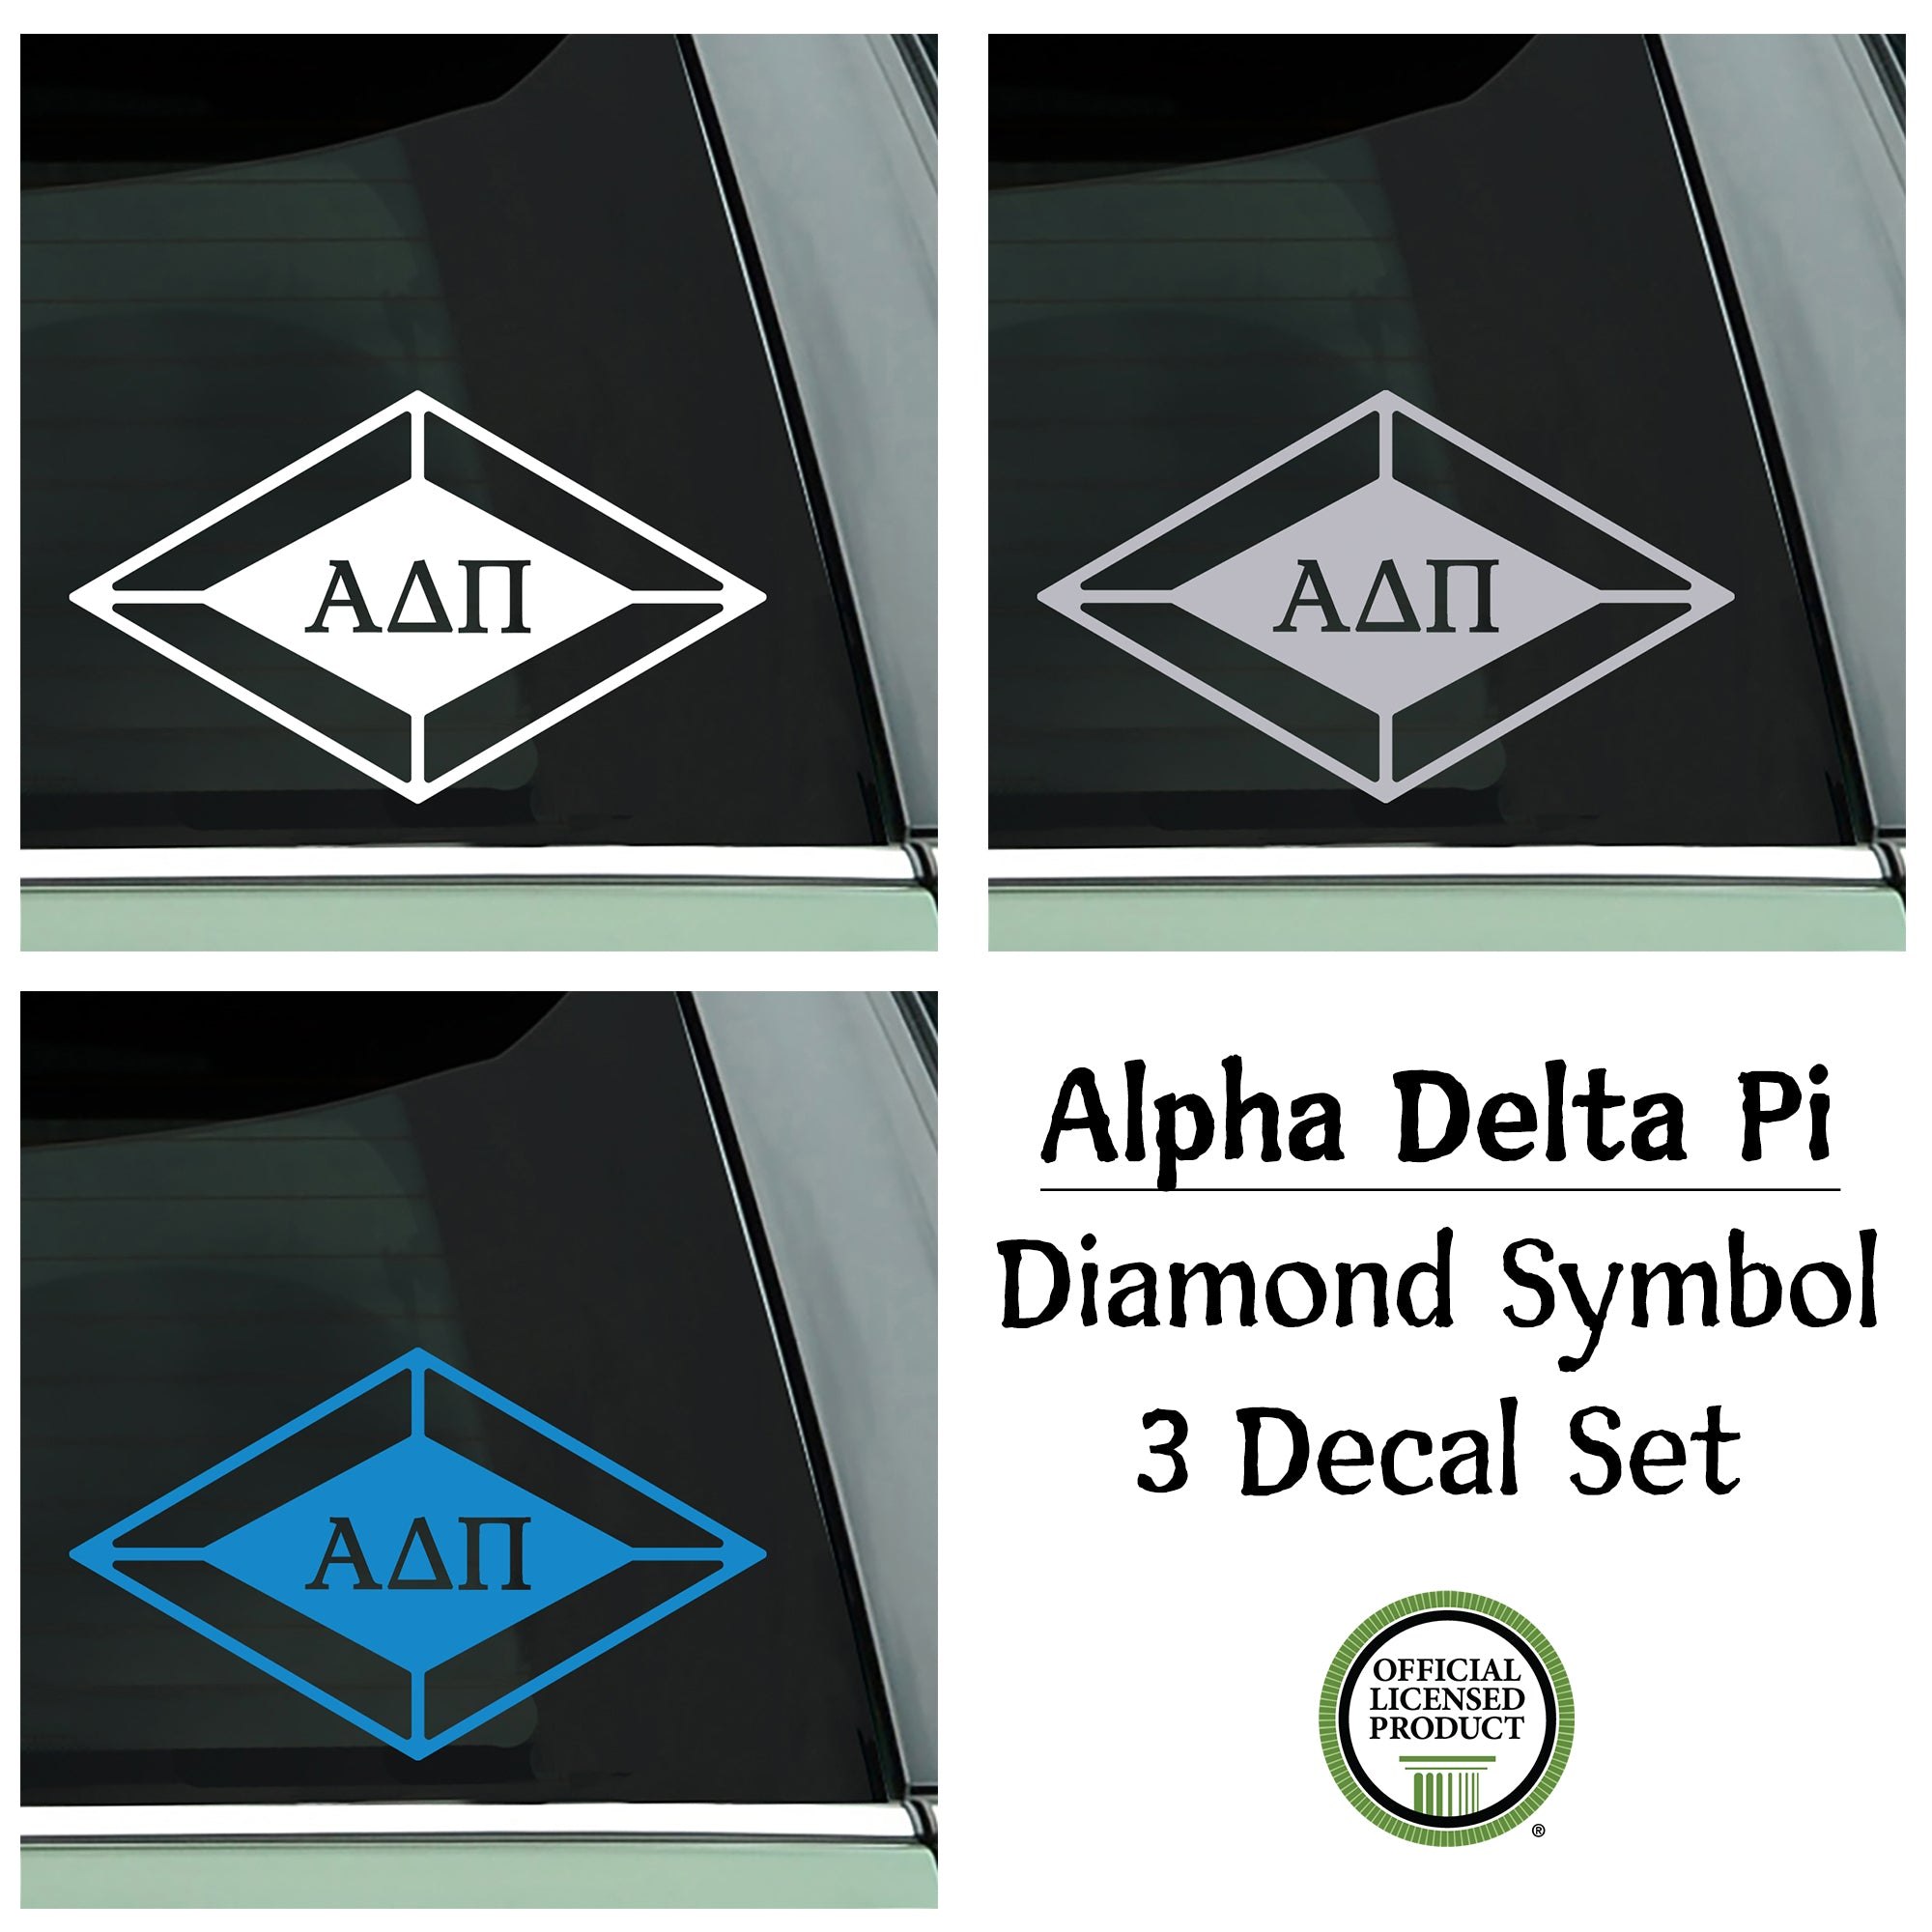 Alpha Delta Pi Decal Set - Diamond Symbol